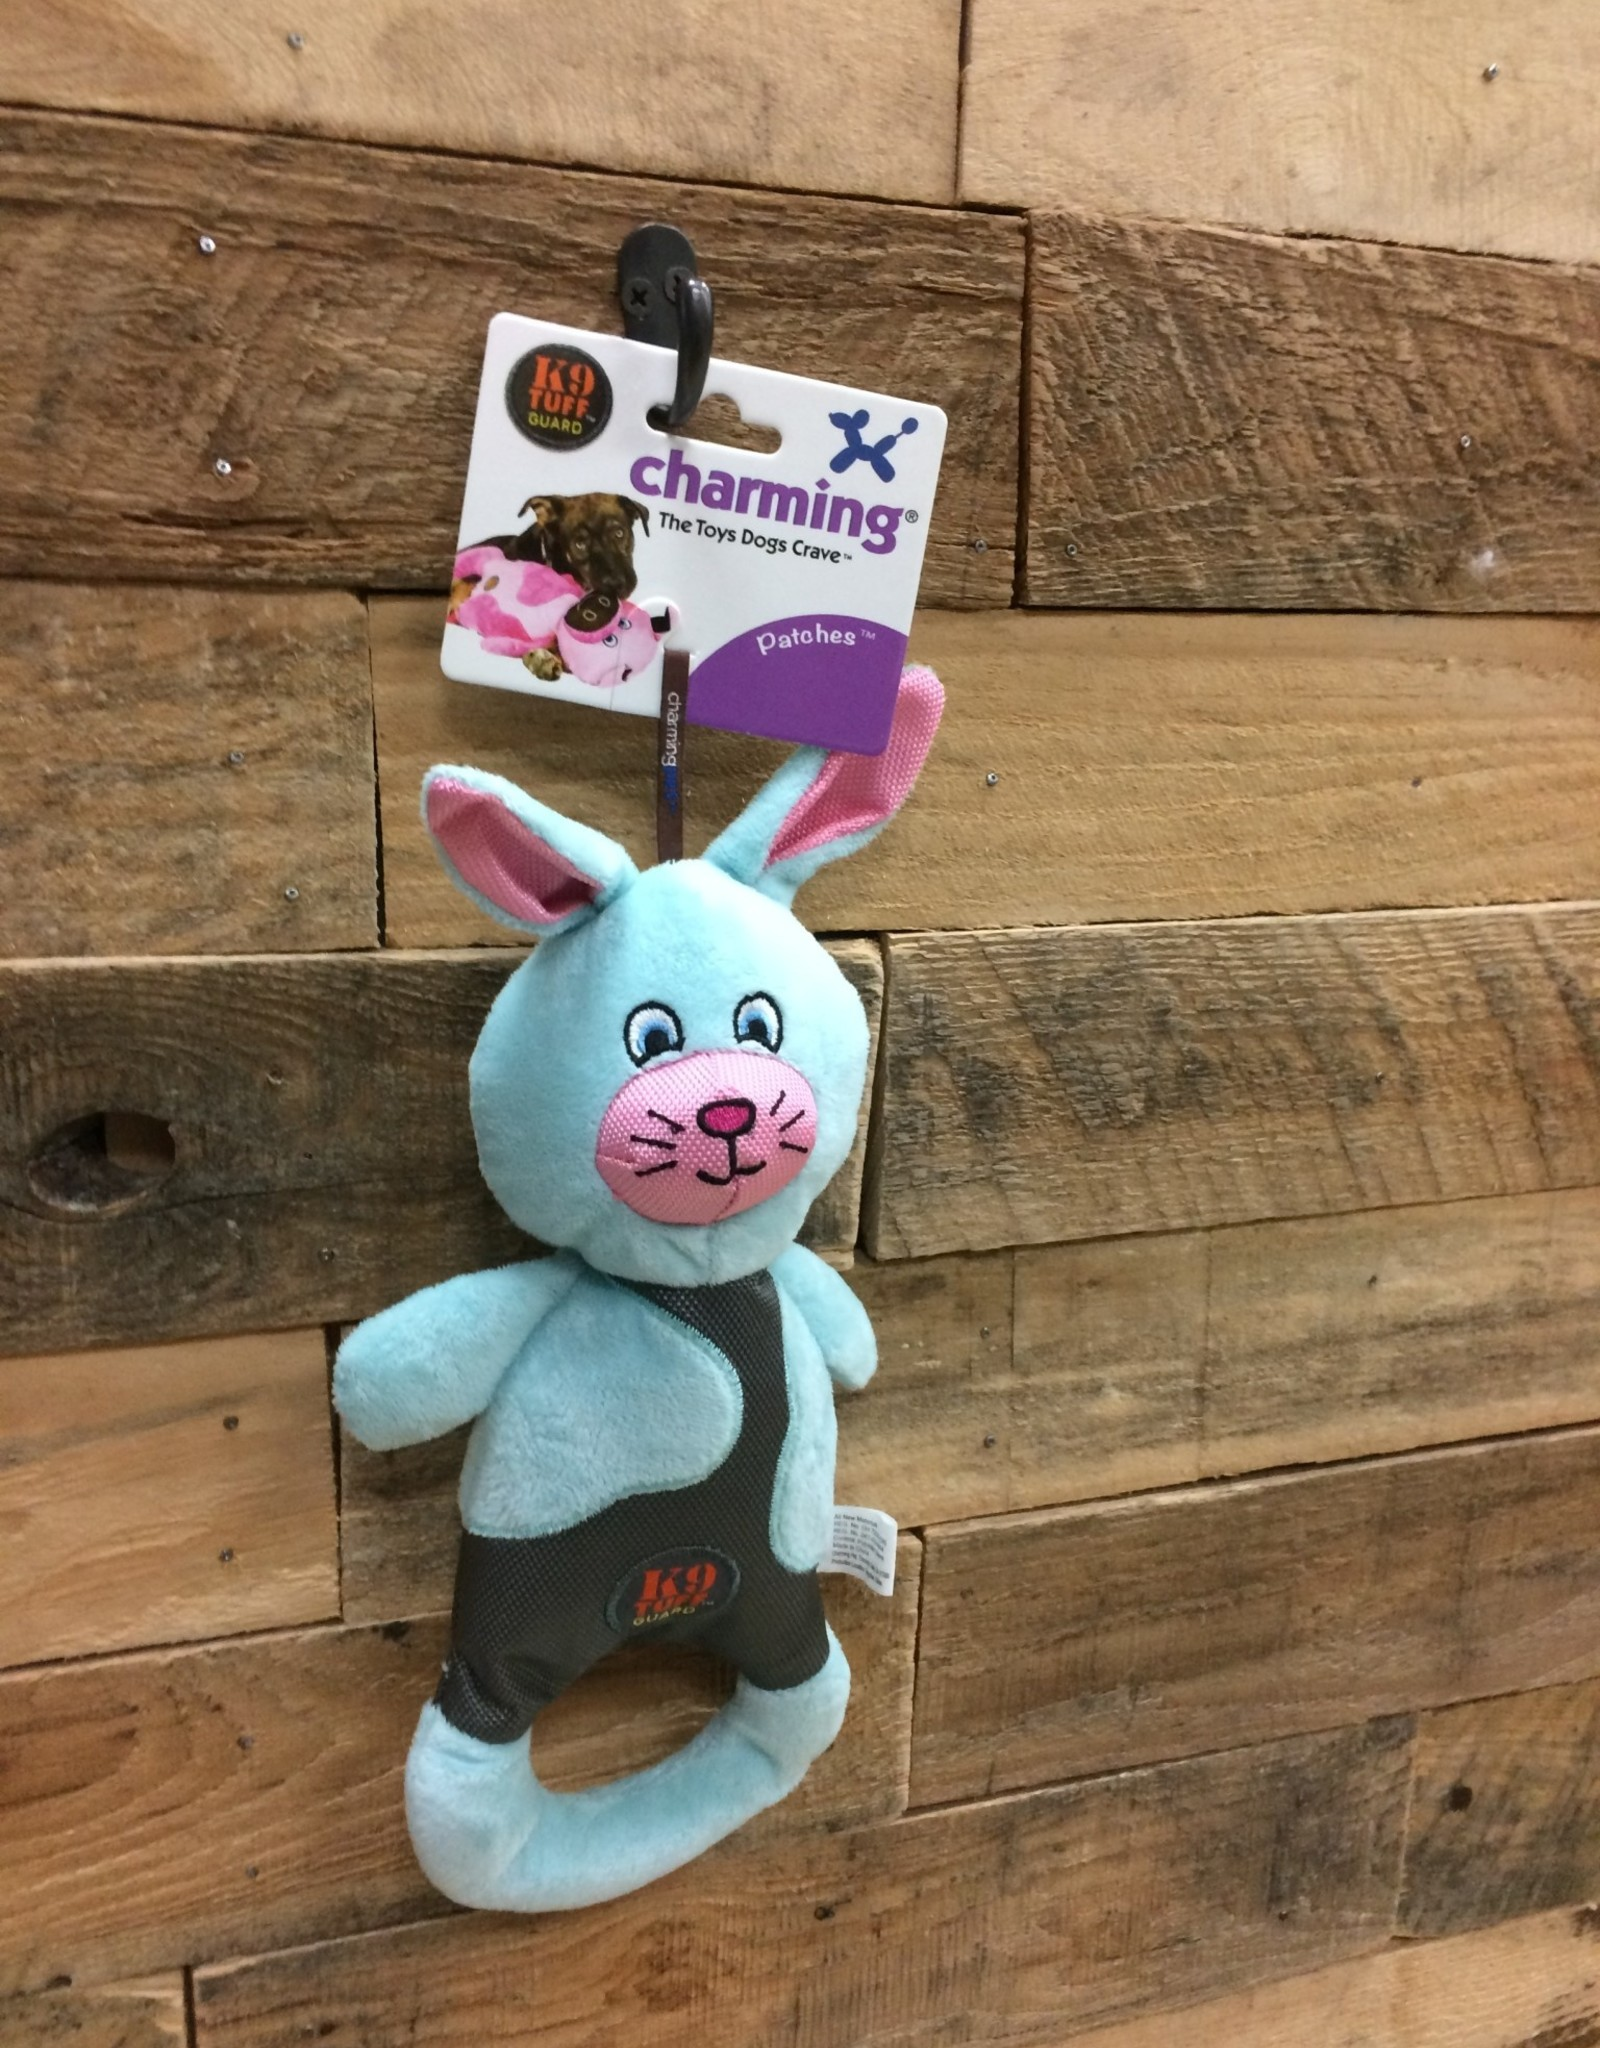 Outward Hound - Charming Pet Charming pet patches bunny small